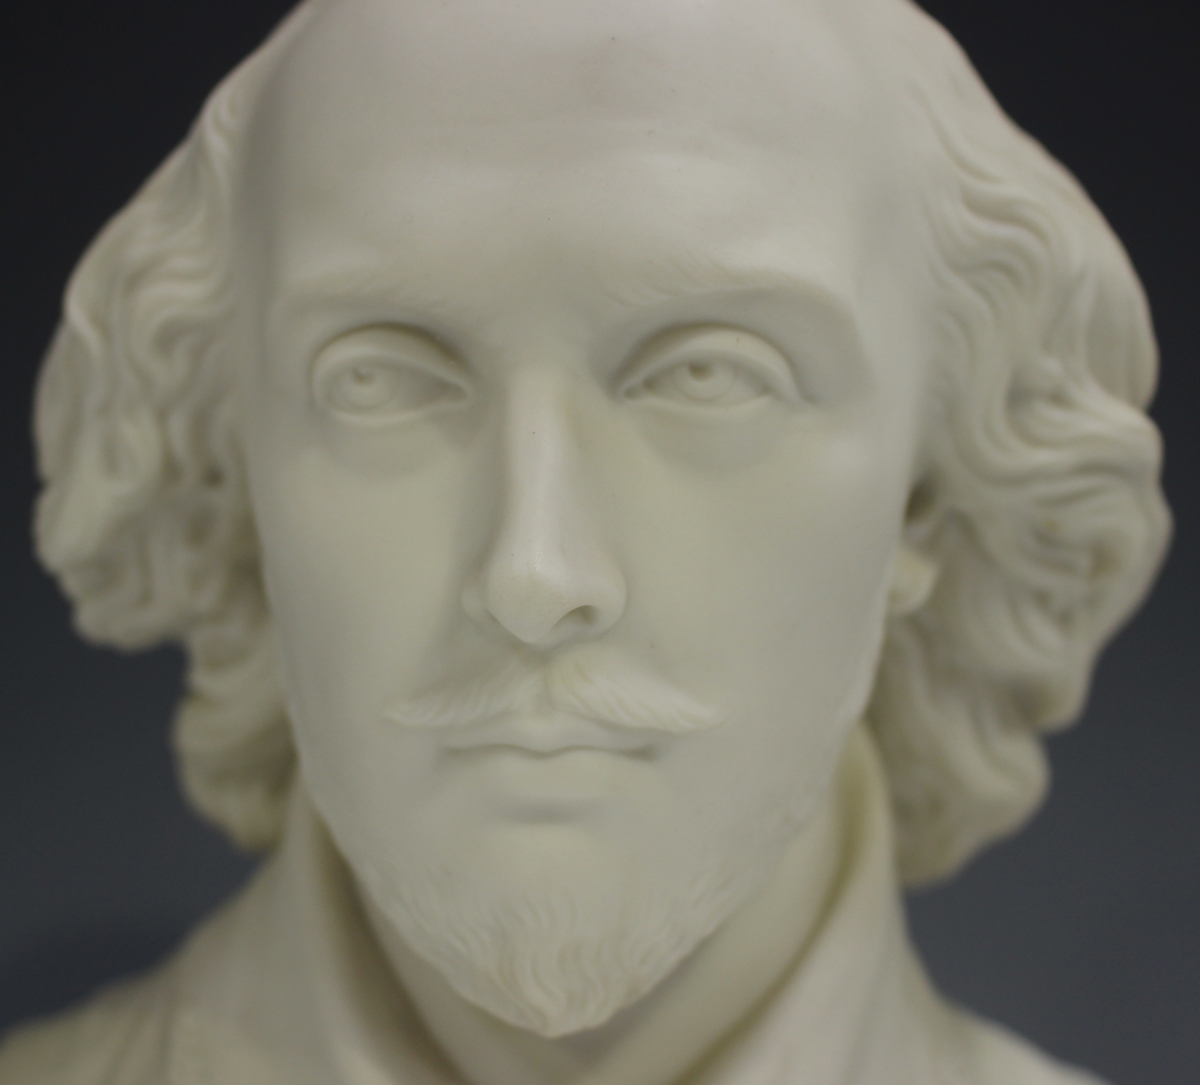 Two Copeland Parian Crystal Palace Art Union busts, second half 19th century, the first depicting - Image 13 of 14